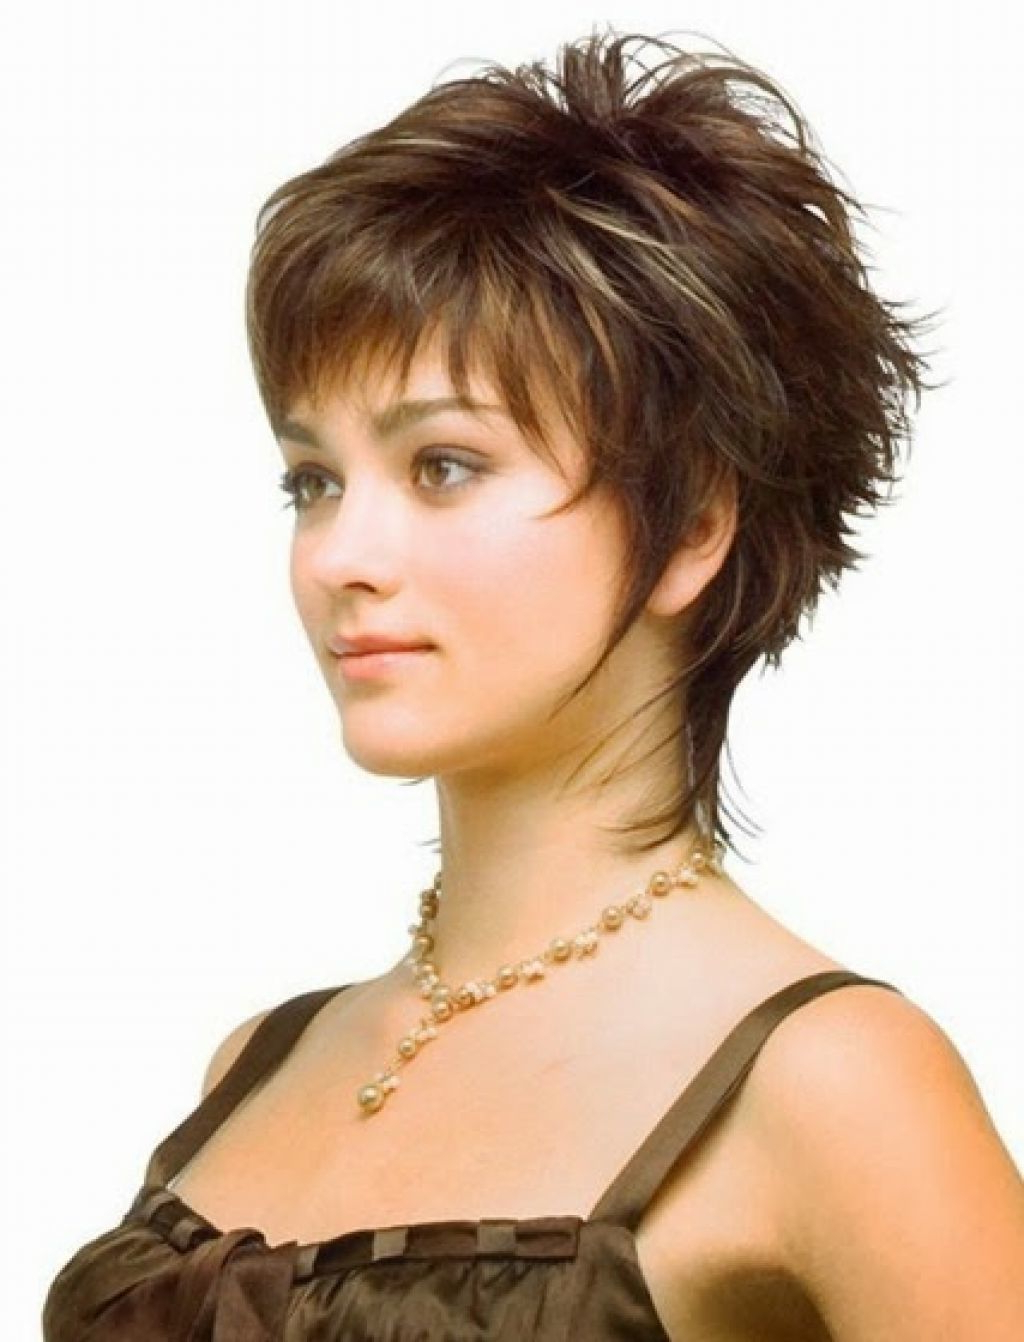 Hairstyles, Short Hairstyles For Fine Hair Fat Face Short Hairstyle Within Short Hairstyles For Fine Hair And Fat Face (View 2 of 25)